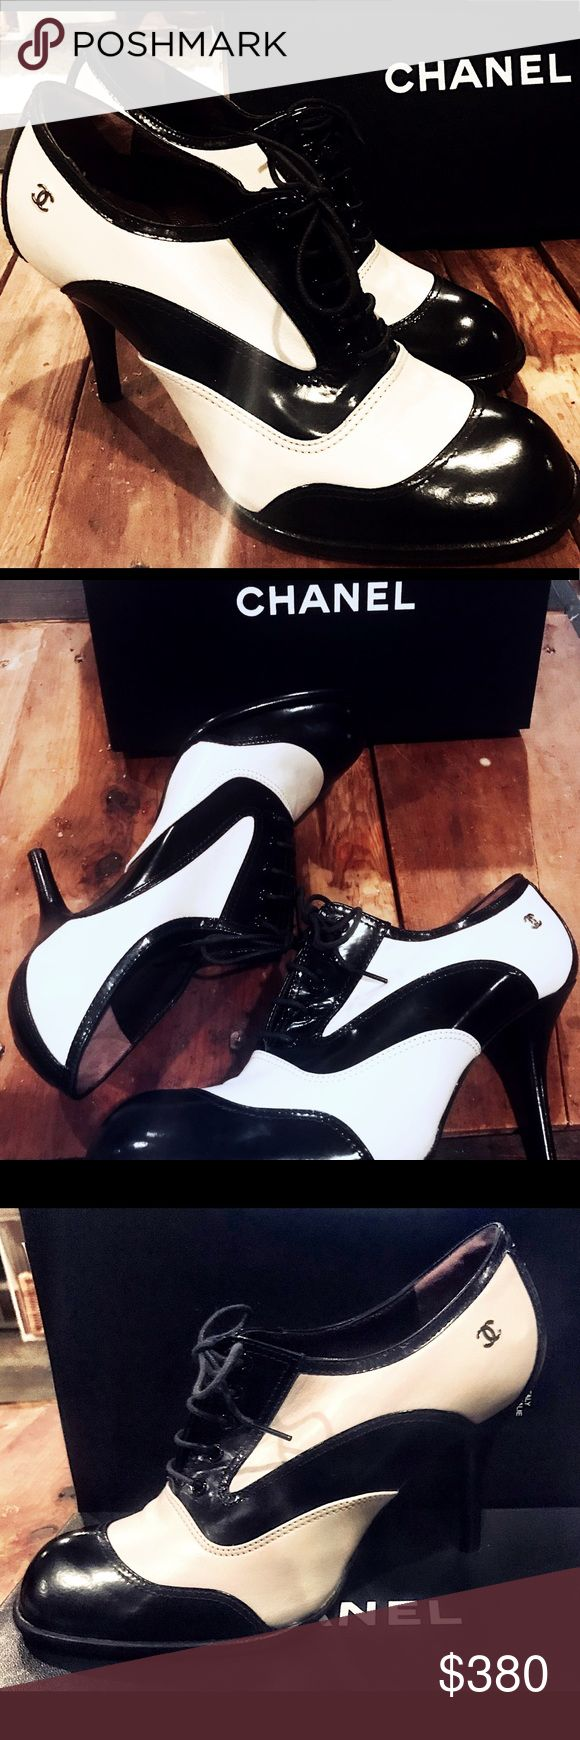 CHANEL Oxford Heeled Pump **Worn Twice! Classic and timeless shoe! Excellent condition, worn twice. A little wear on soles. No scratches stains or marks. Silver CC logo on side of each shoe. Comes in original box with price tag as well as with original heel tip replacements. Size 39 or US 9 CHANEL Shoes Heels